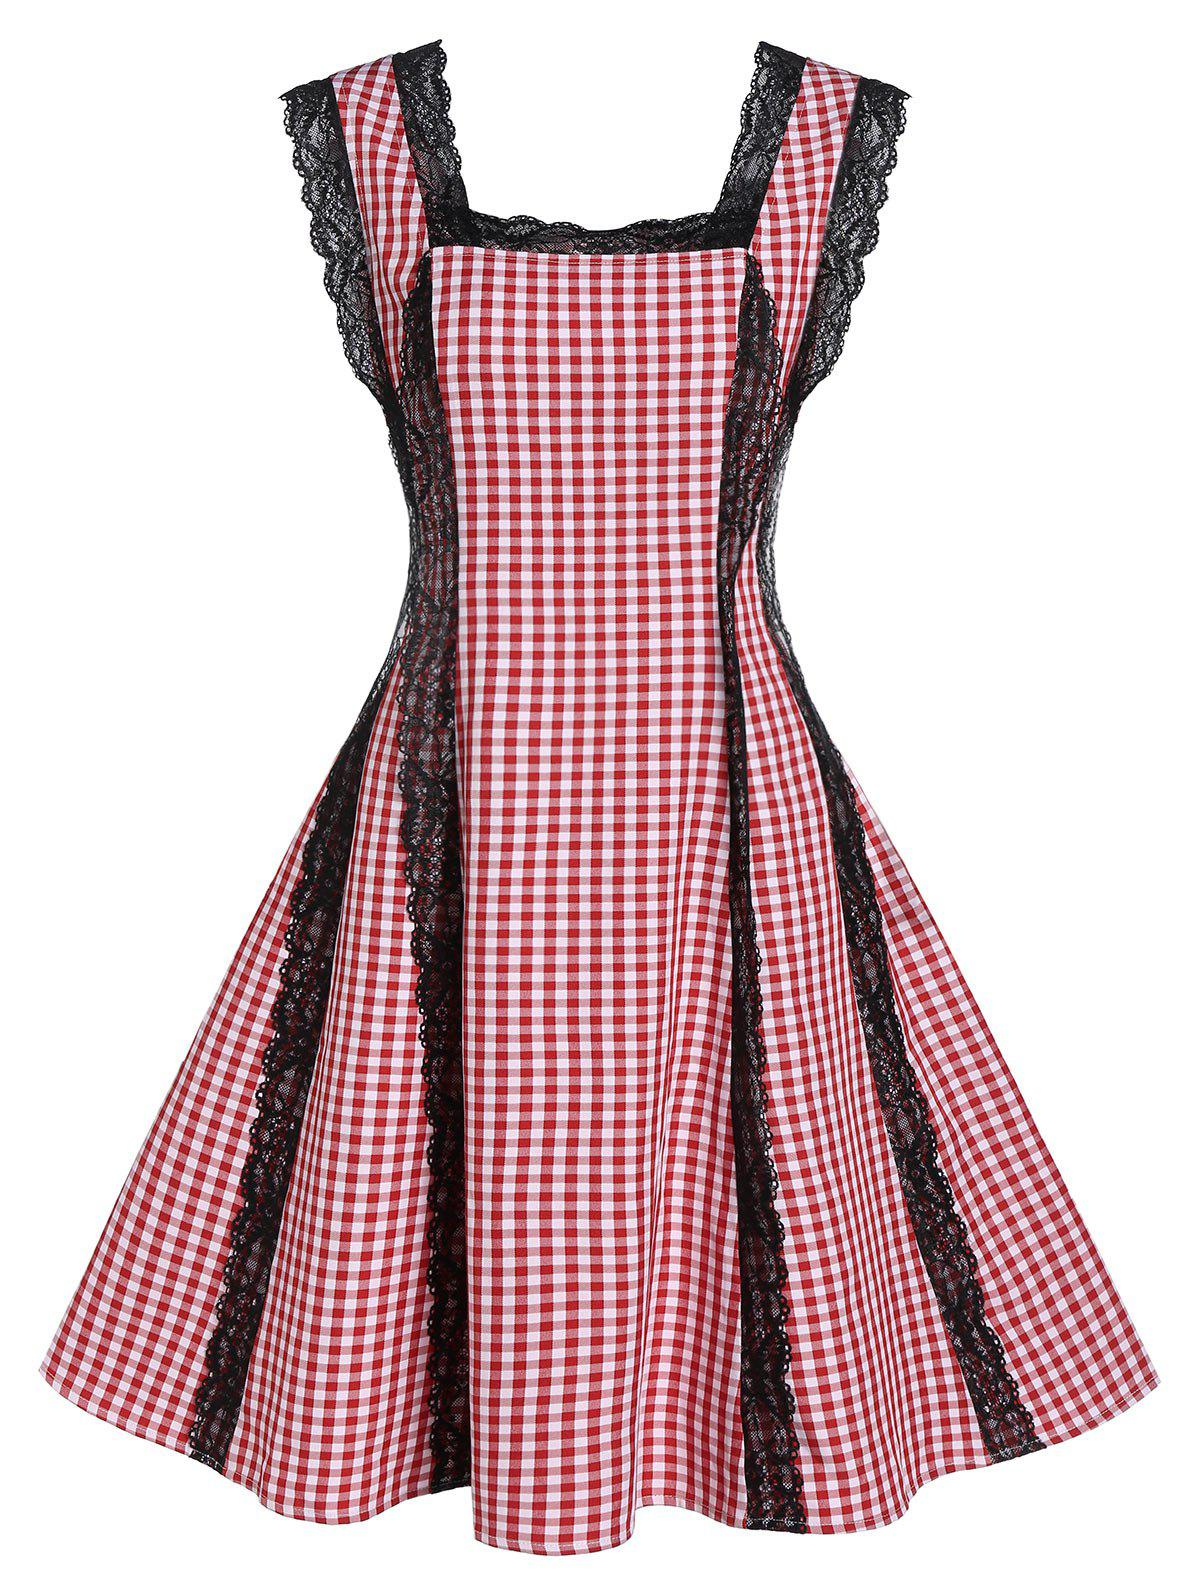 Shops Plaid Print Lace Panel Fit And Flare Dress